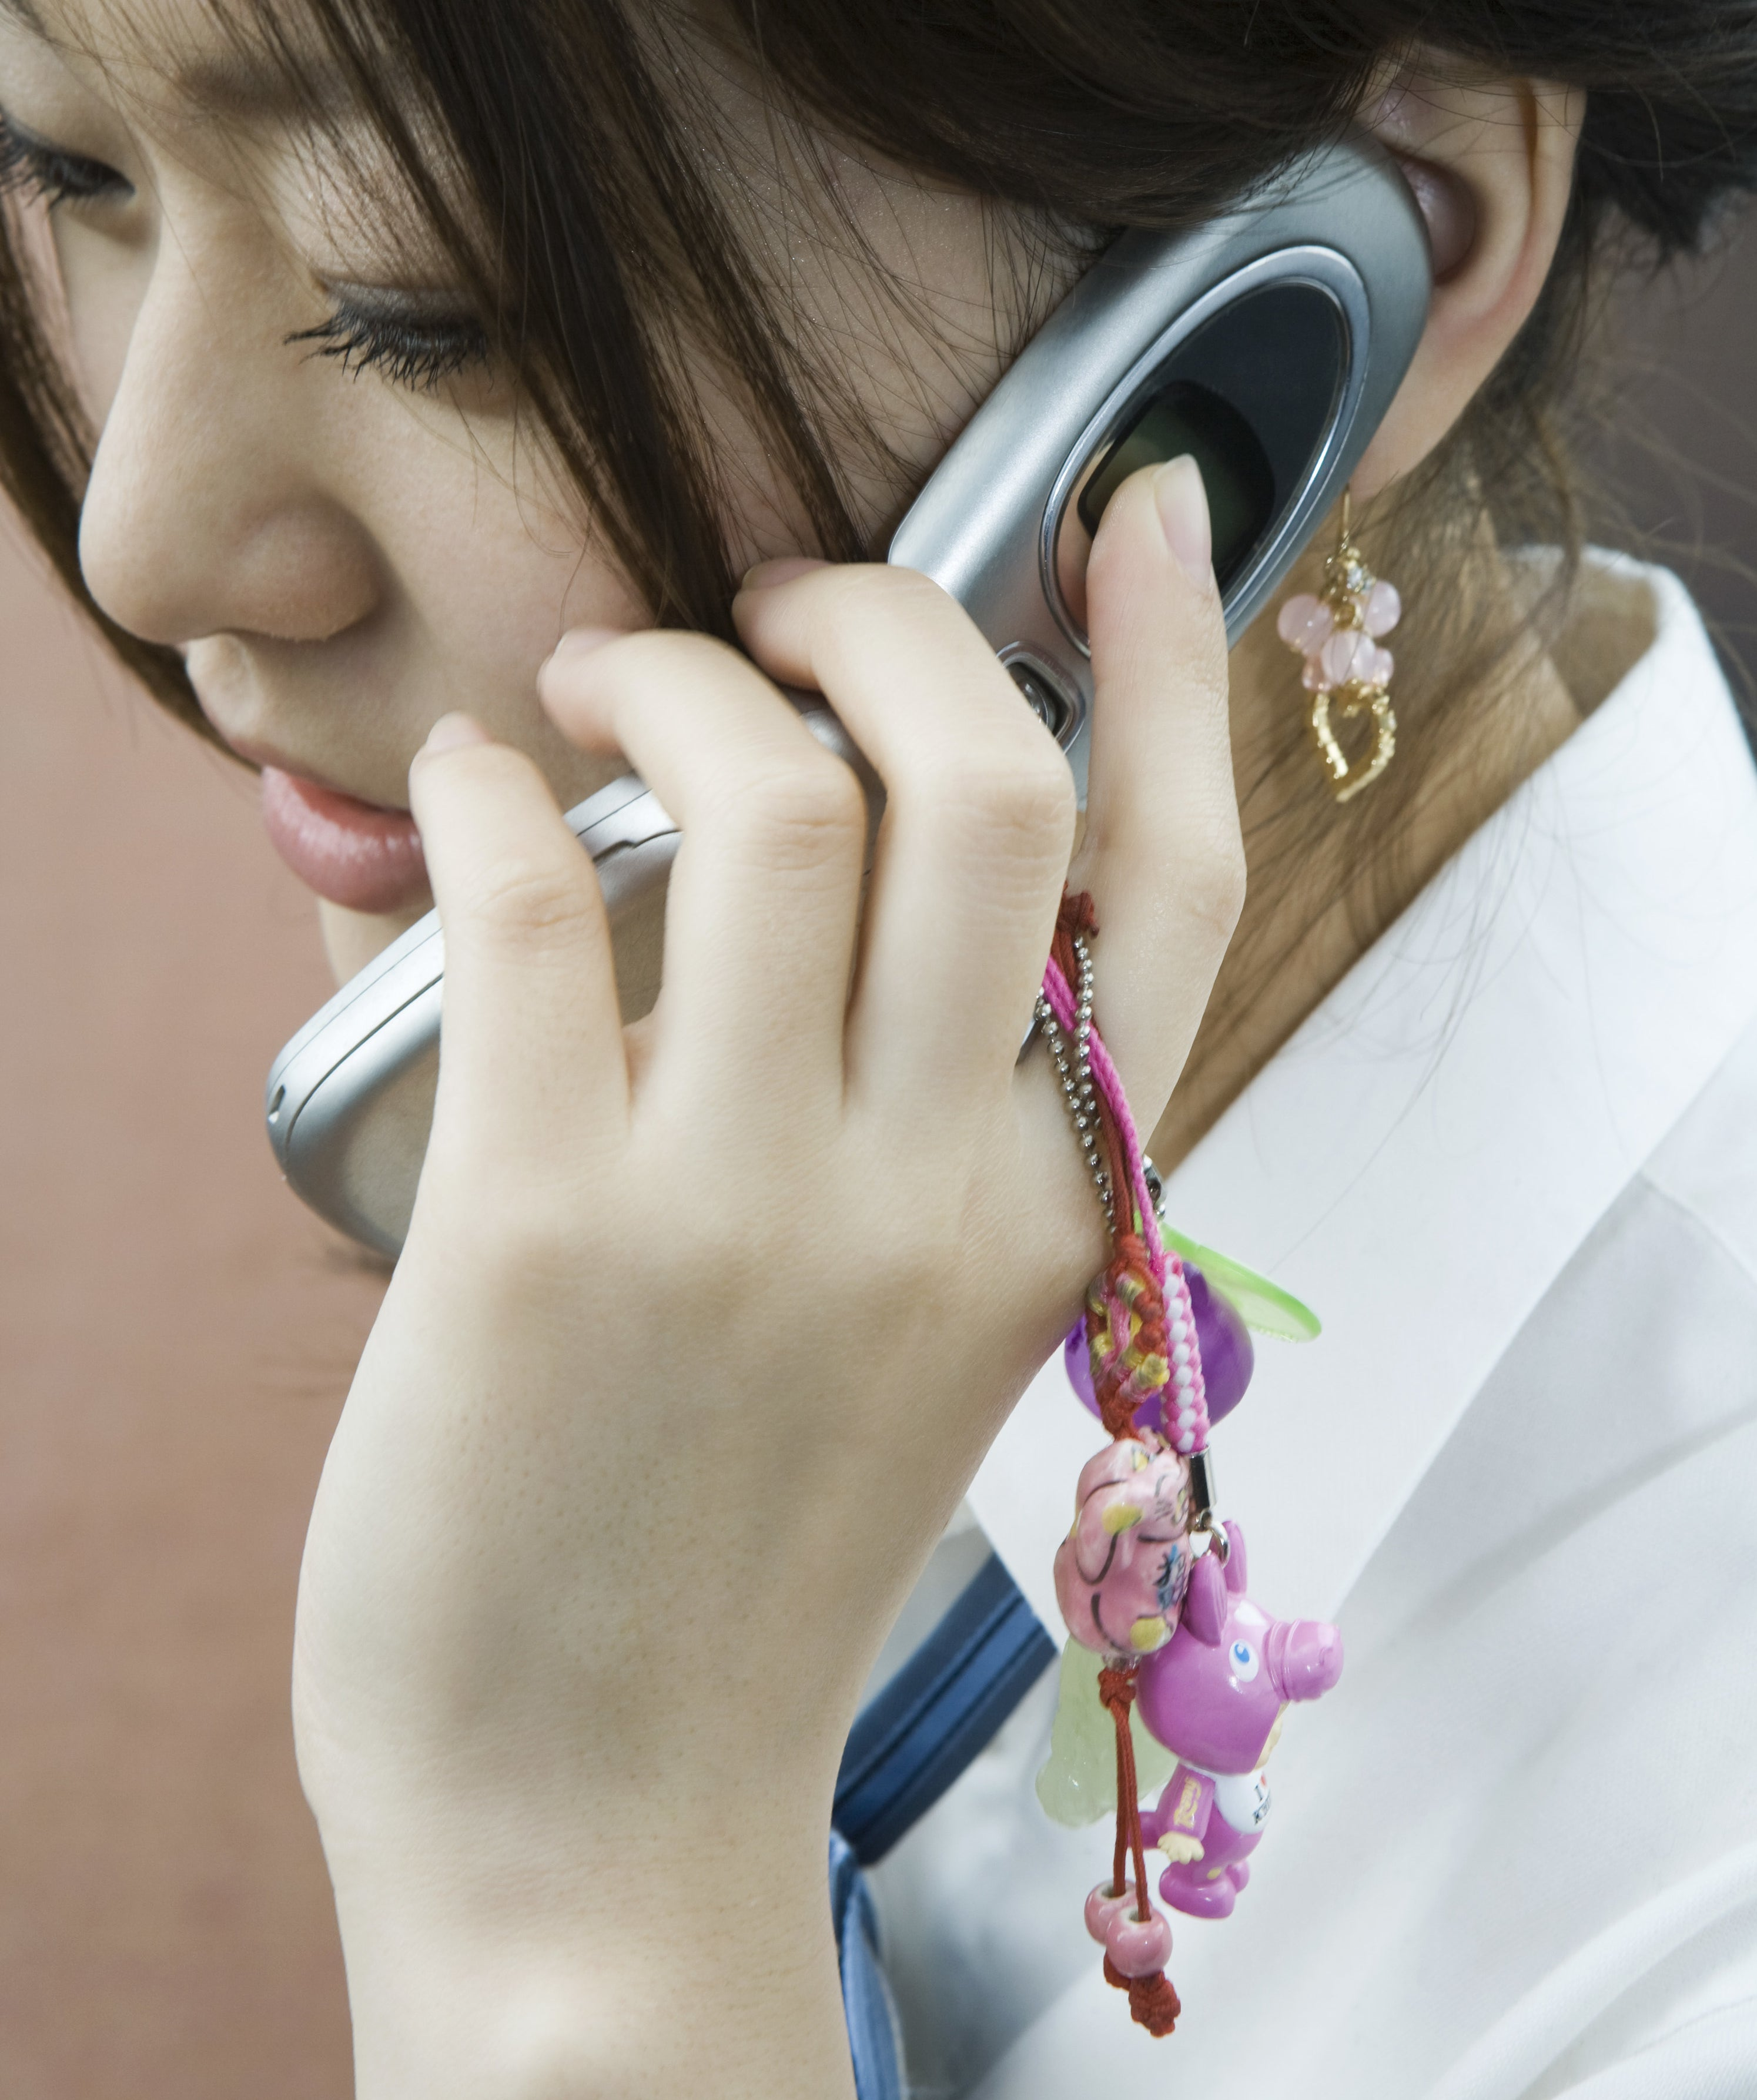 Young woman using cellphone decorated with charms